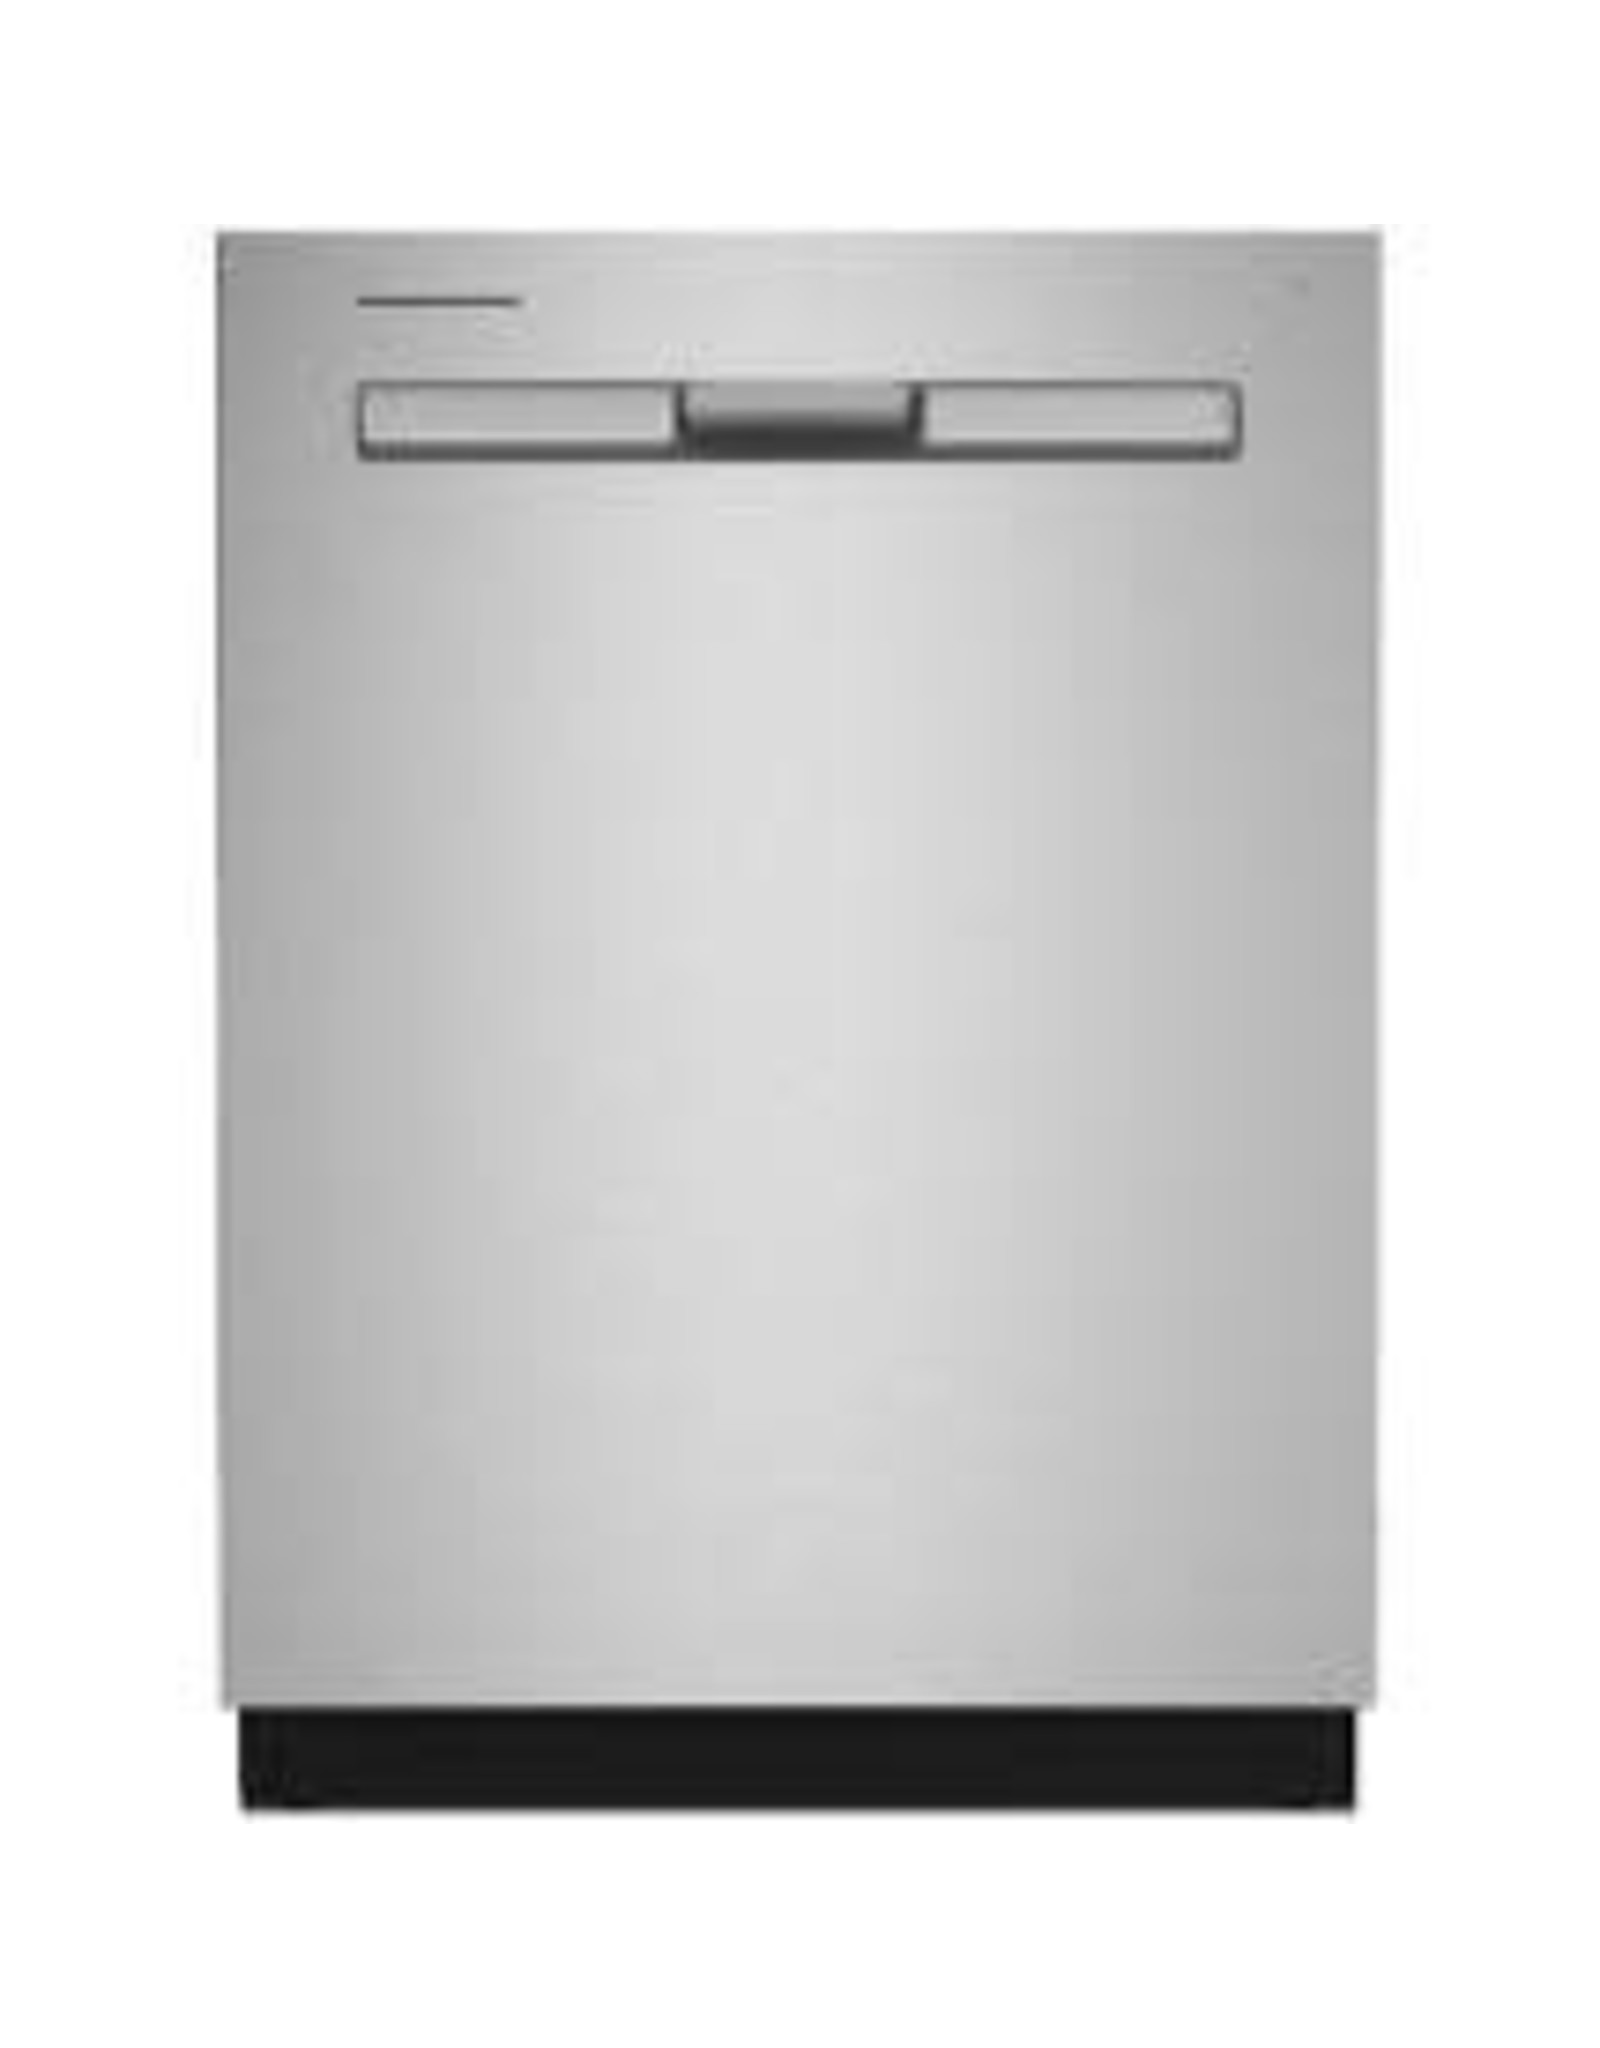 MAYTAG MDB4949SKZ 24 in. Fingerprint Resistant Stainless Front Control Built-In Tall Tub Dishwasher with Dual Power Filtration, 50 dBA